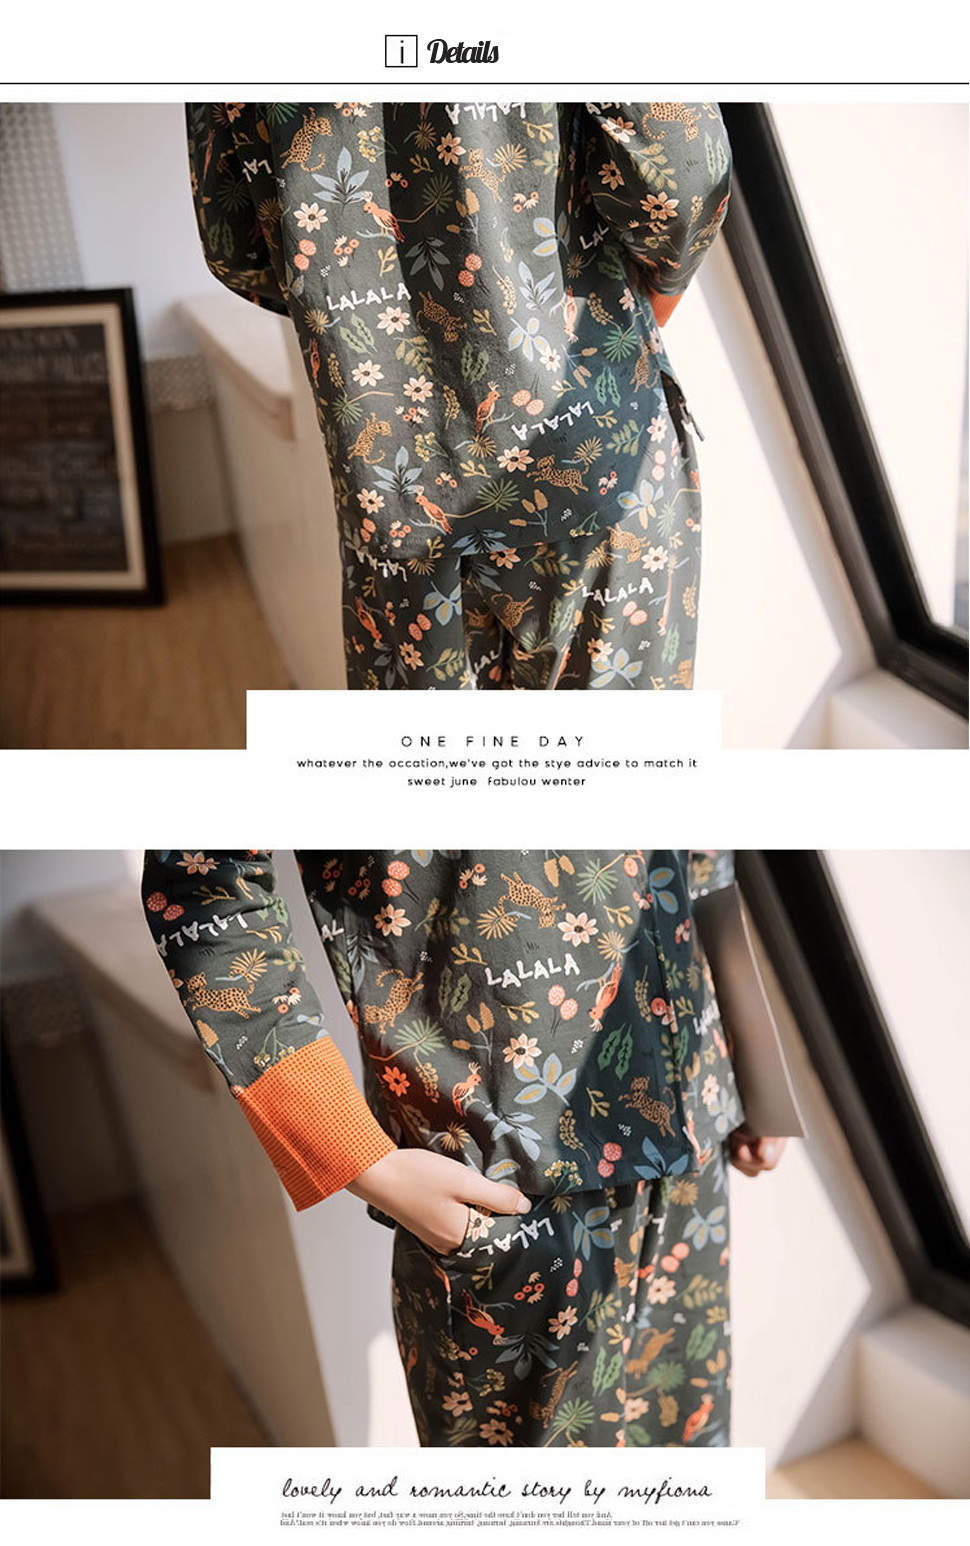 Spring-Cotton-Floral-Printing-Long-Sleeve-Lapel-Shirt-Pajama-Set-1539295